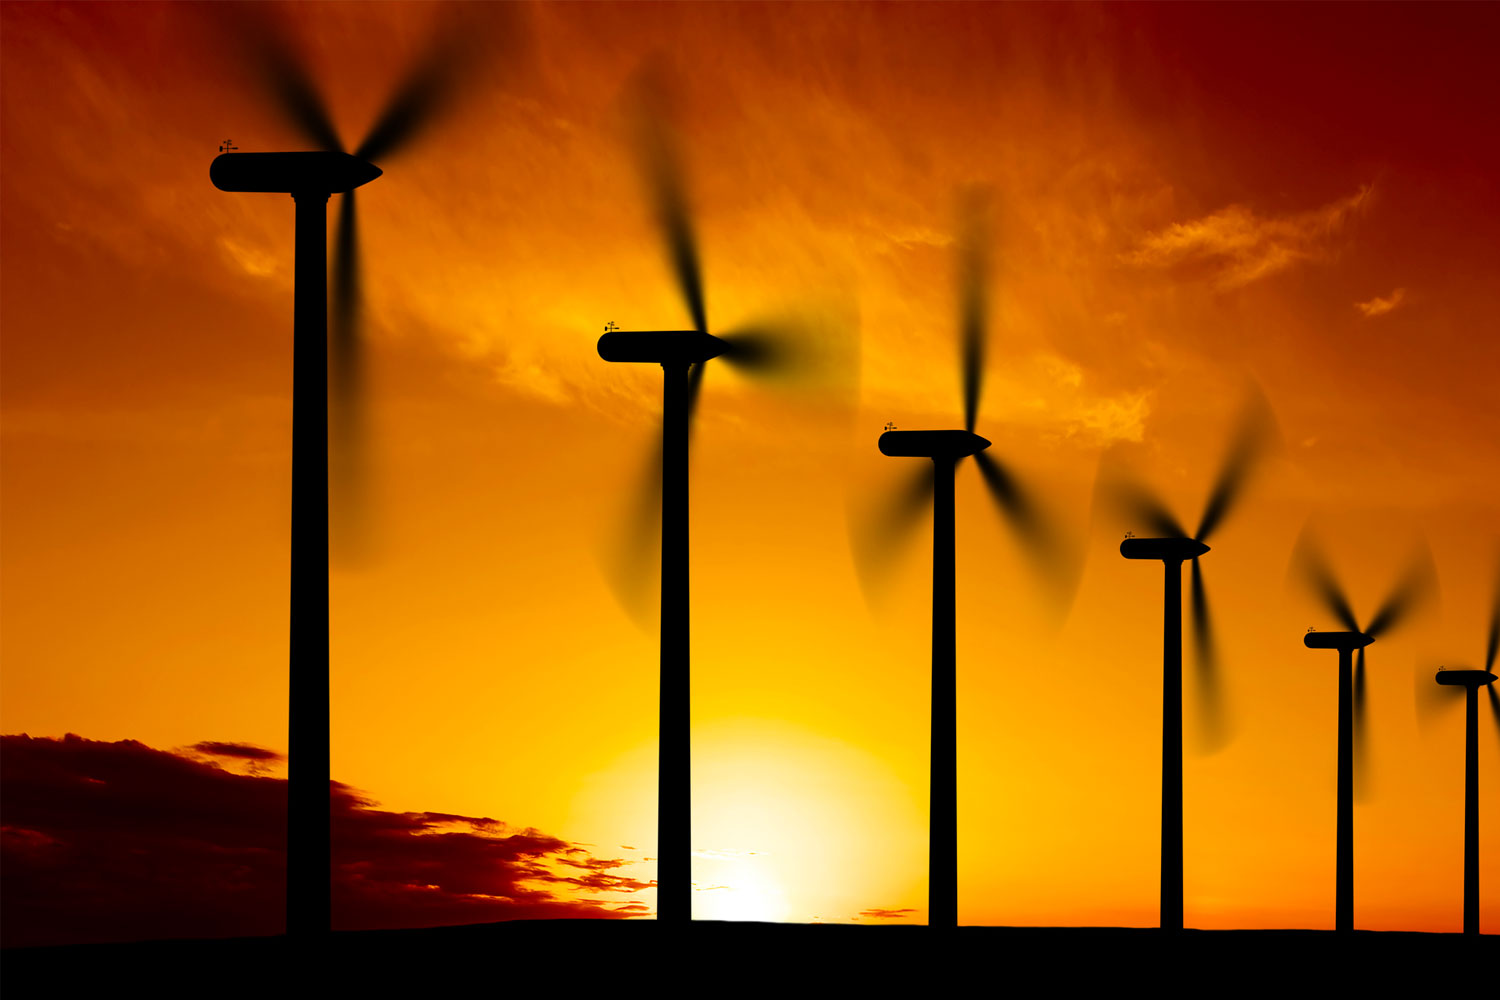 Wind turbines with sunset